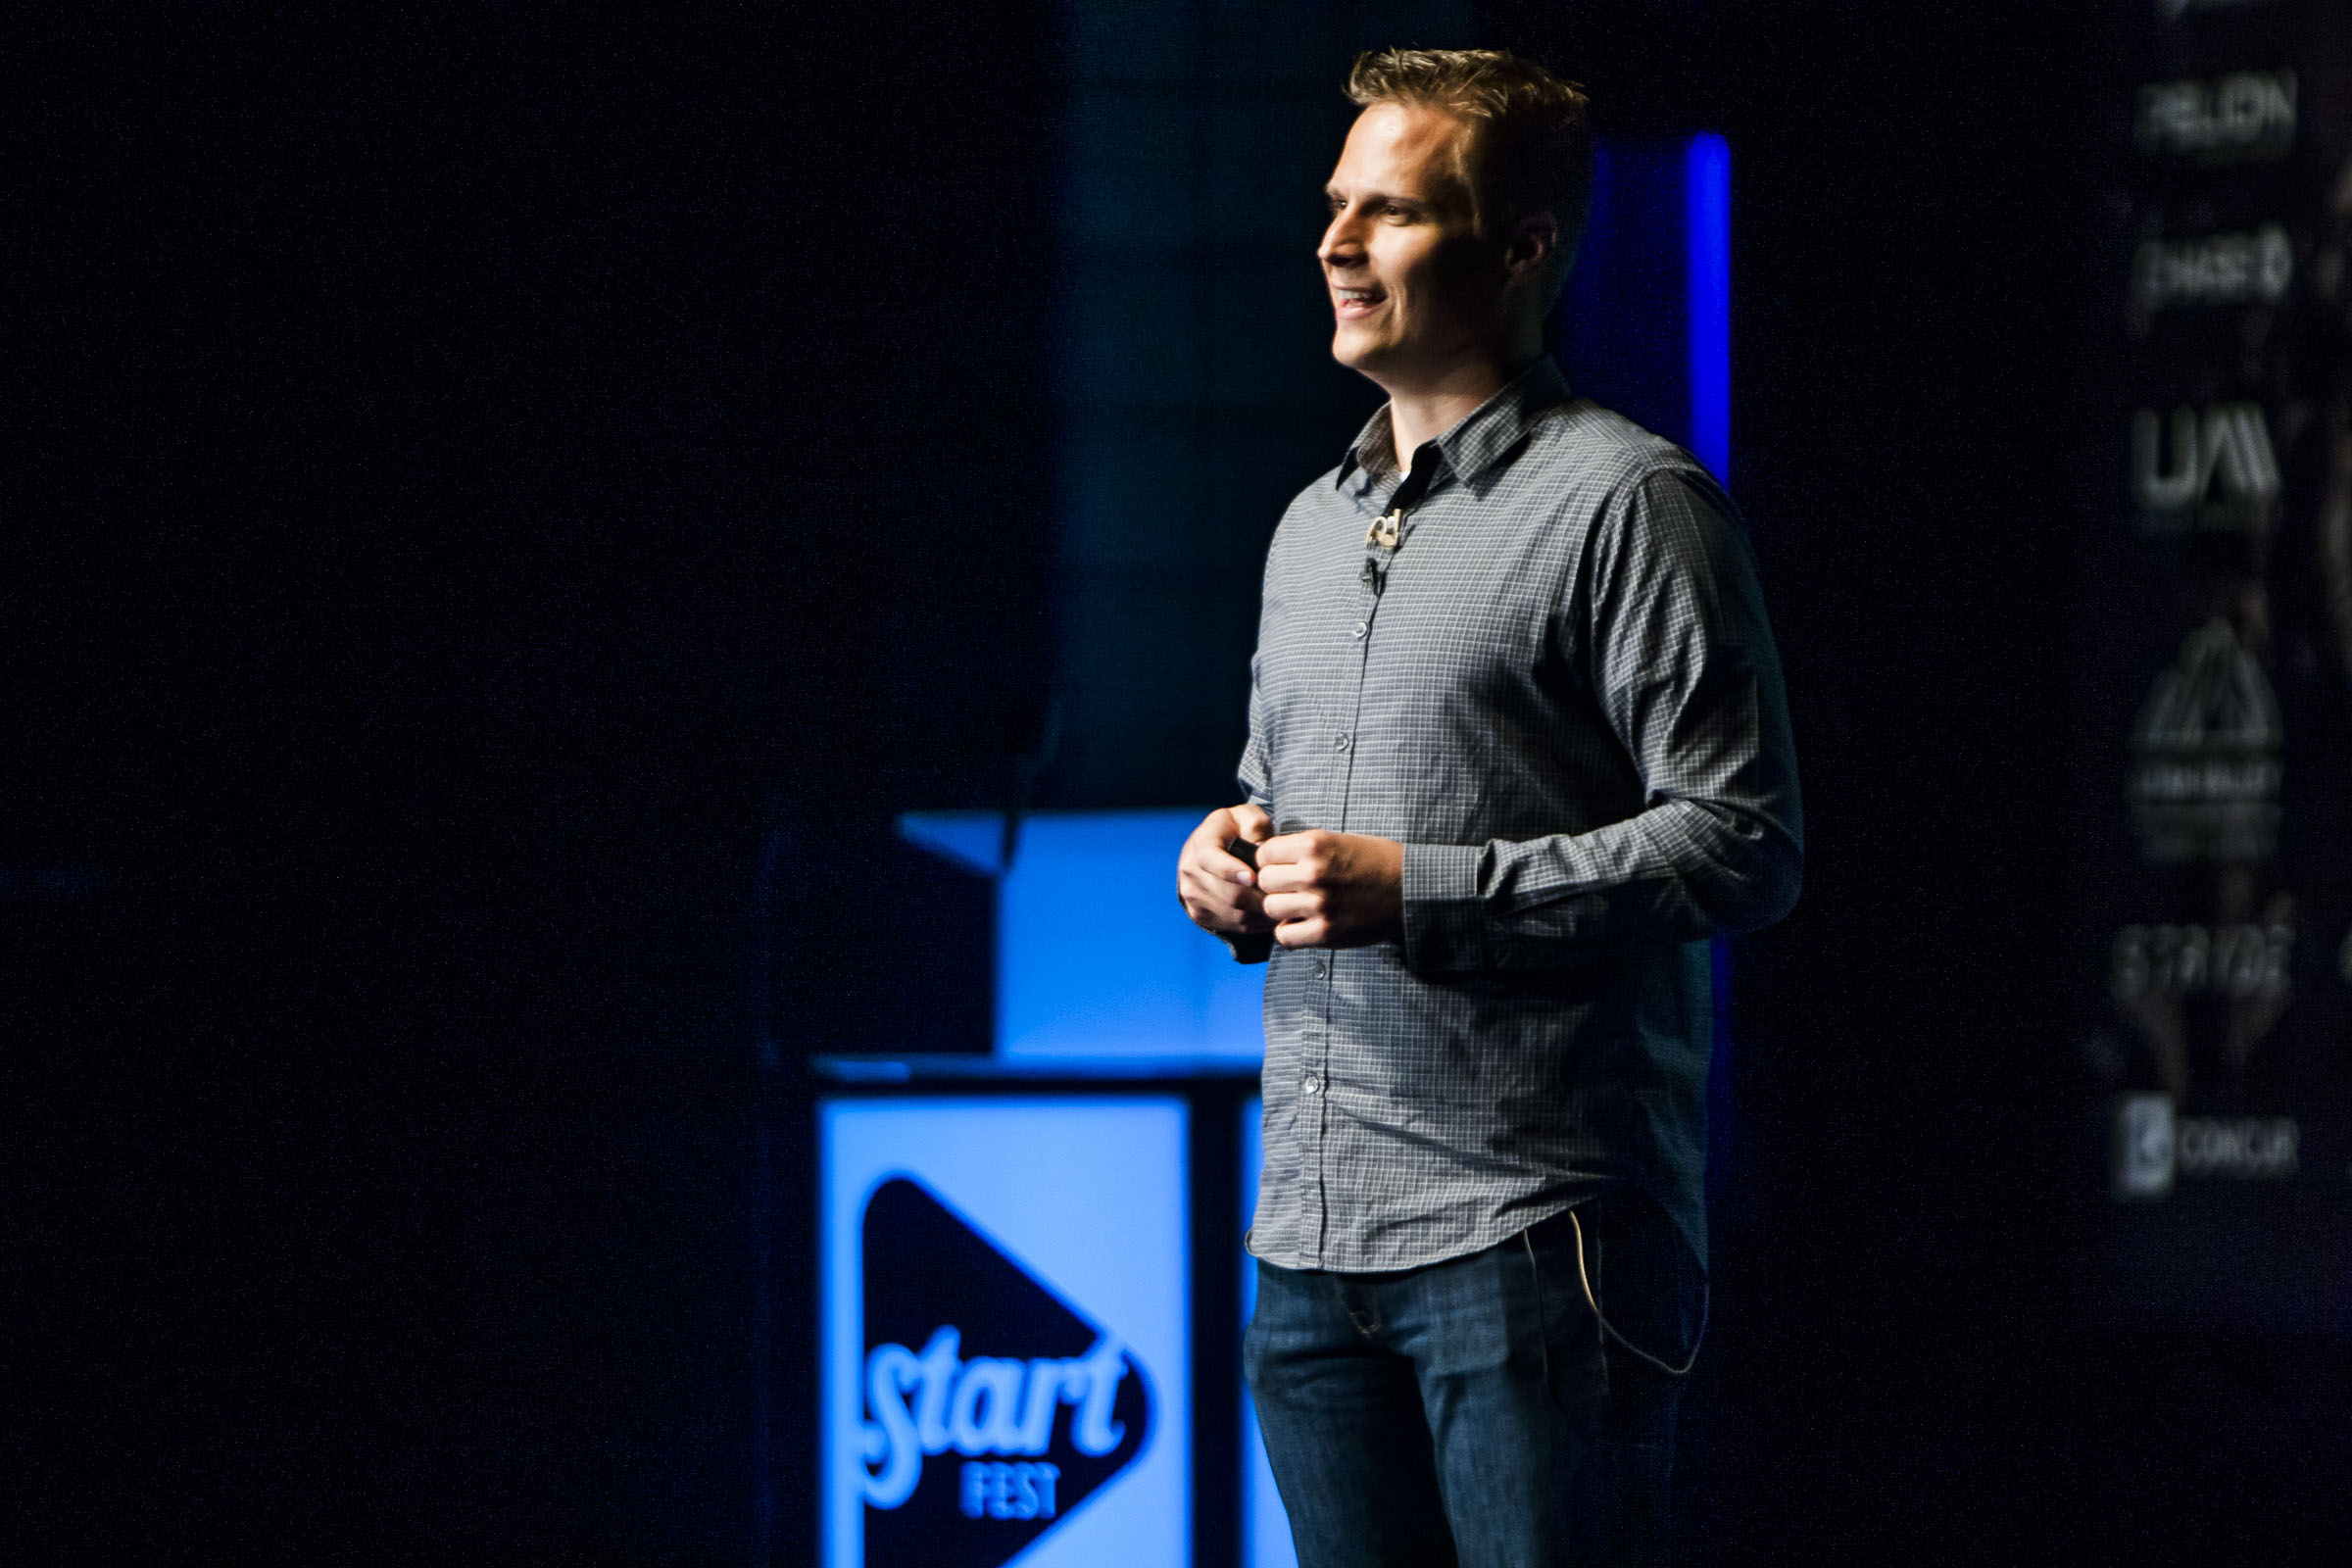 Dave Bateman, CEO of Entrata, speaks during StartFEST at the Covey Center for the Arts in Provo on Wednesday, Sept. 2, 2015.